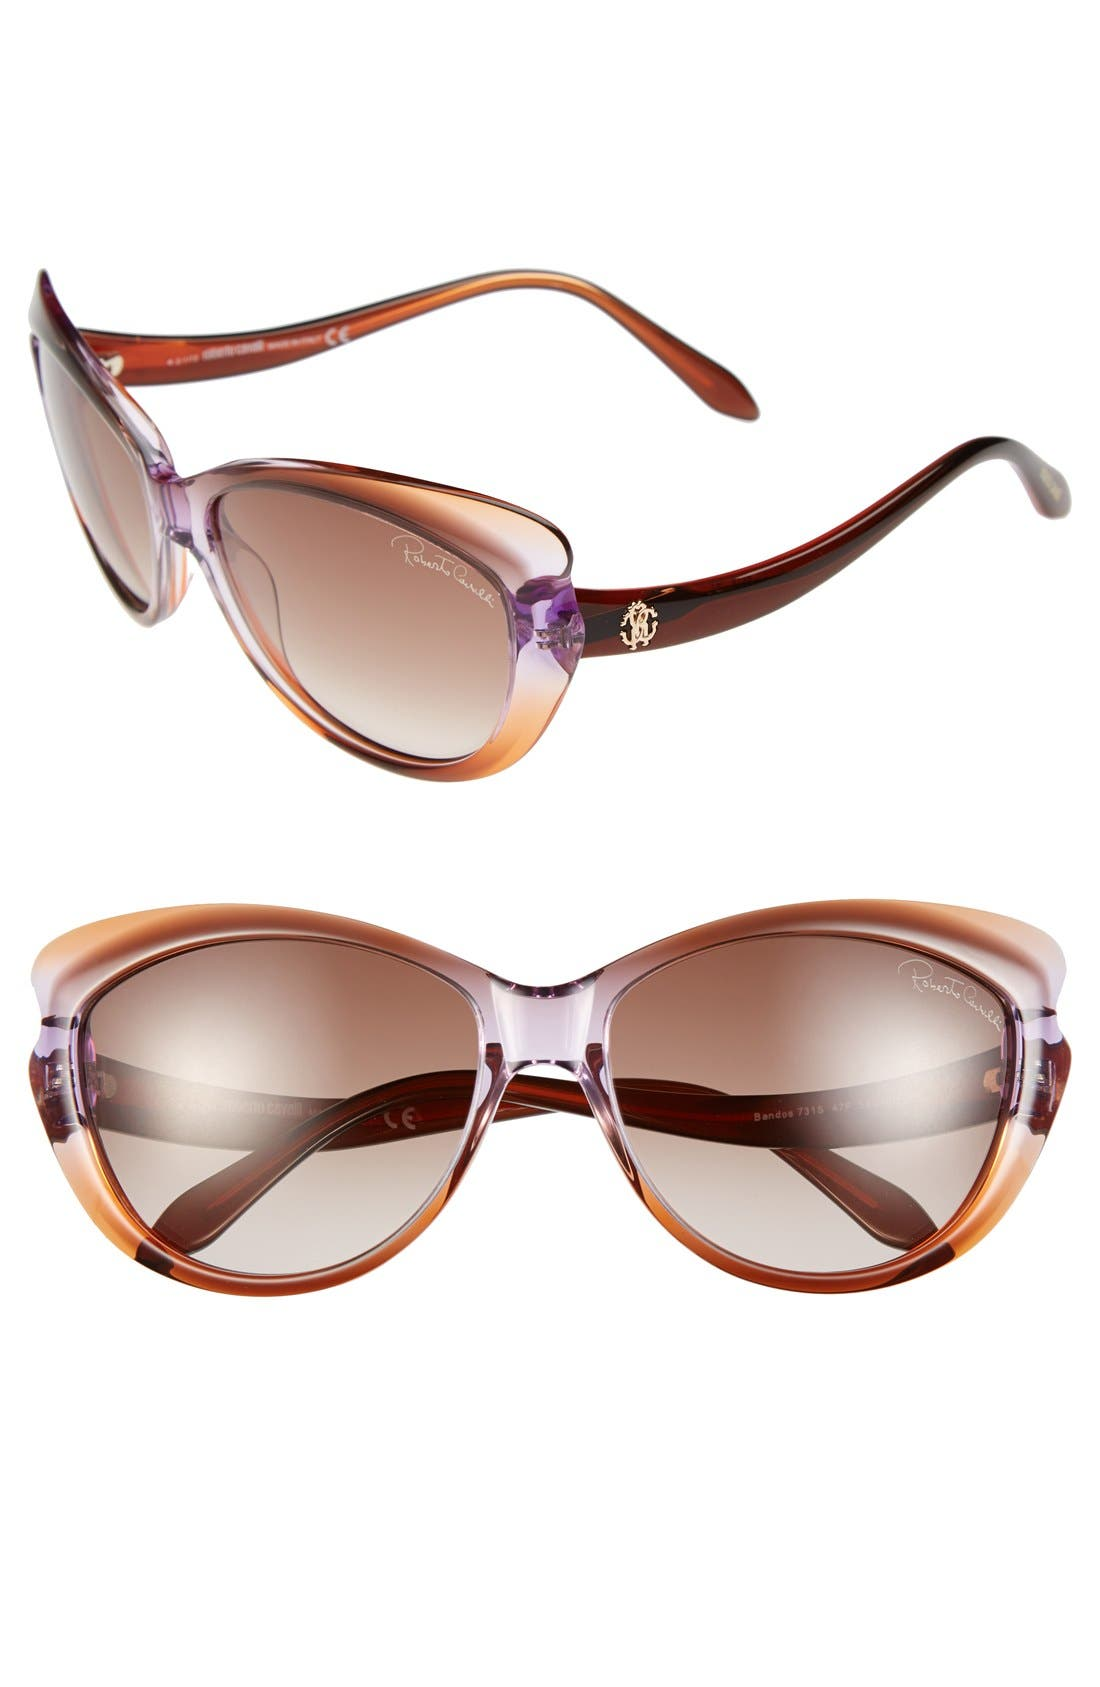 Alternate Image 1 Selected - Roberto Cavalli 59mm Sunglasses